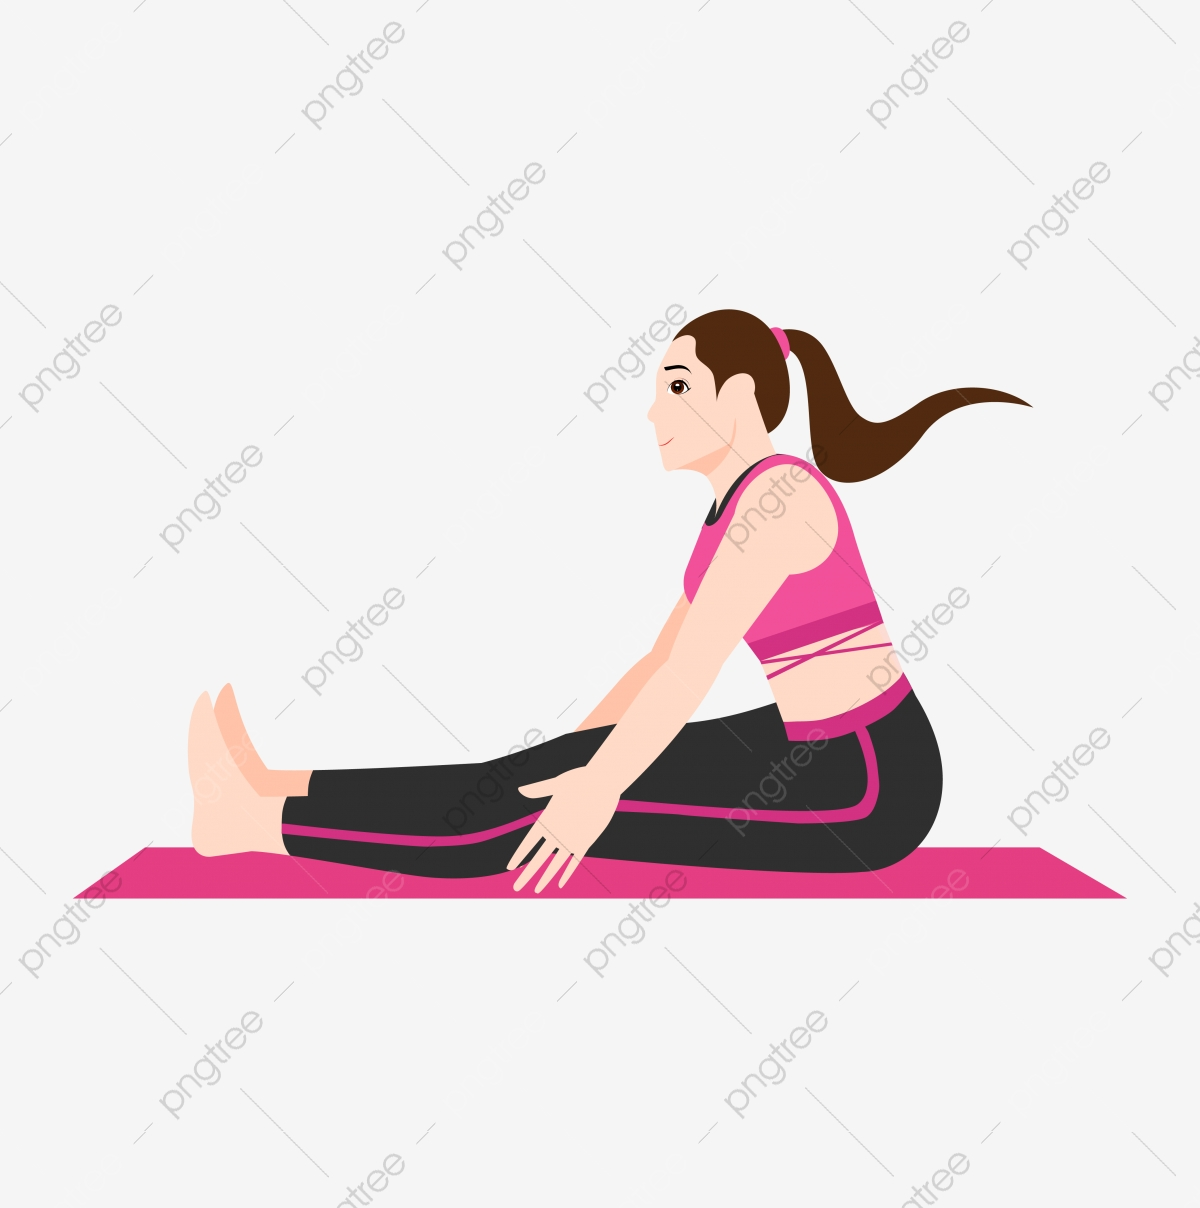 Vector Free Buckle Cartoon Woman Yoga Cartoon Yoga Hd Png And Vector With Transparent Background For Free Download